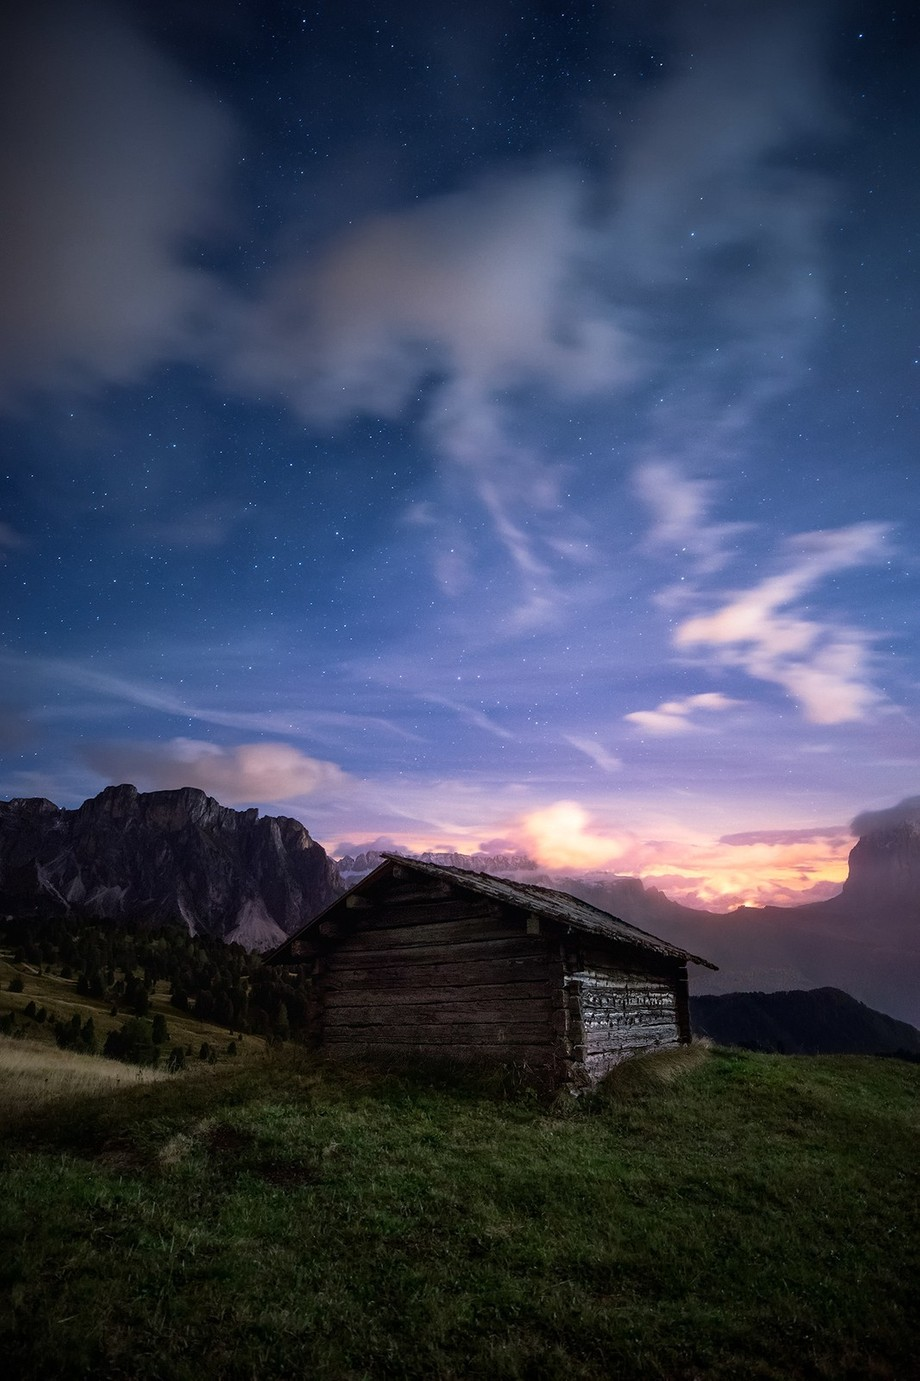 Night in the Mountains by Mbeiter - Covers Photo Contest Vol 42